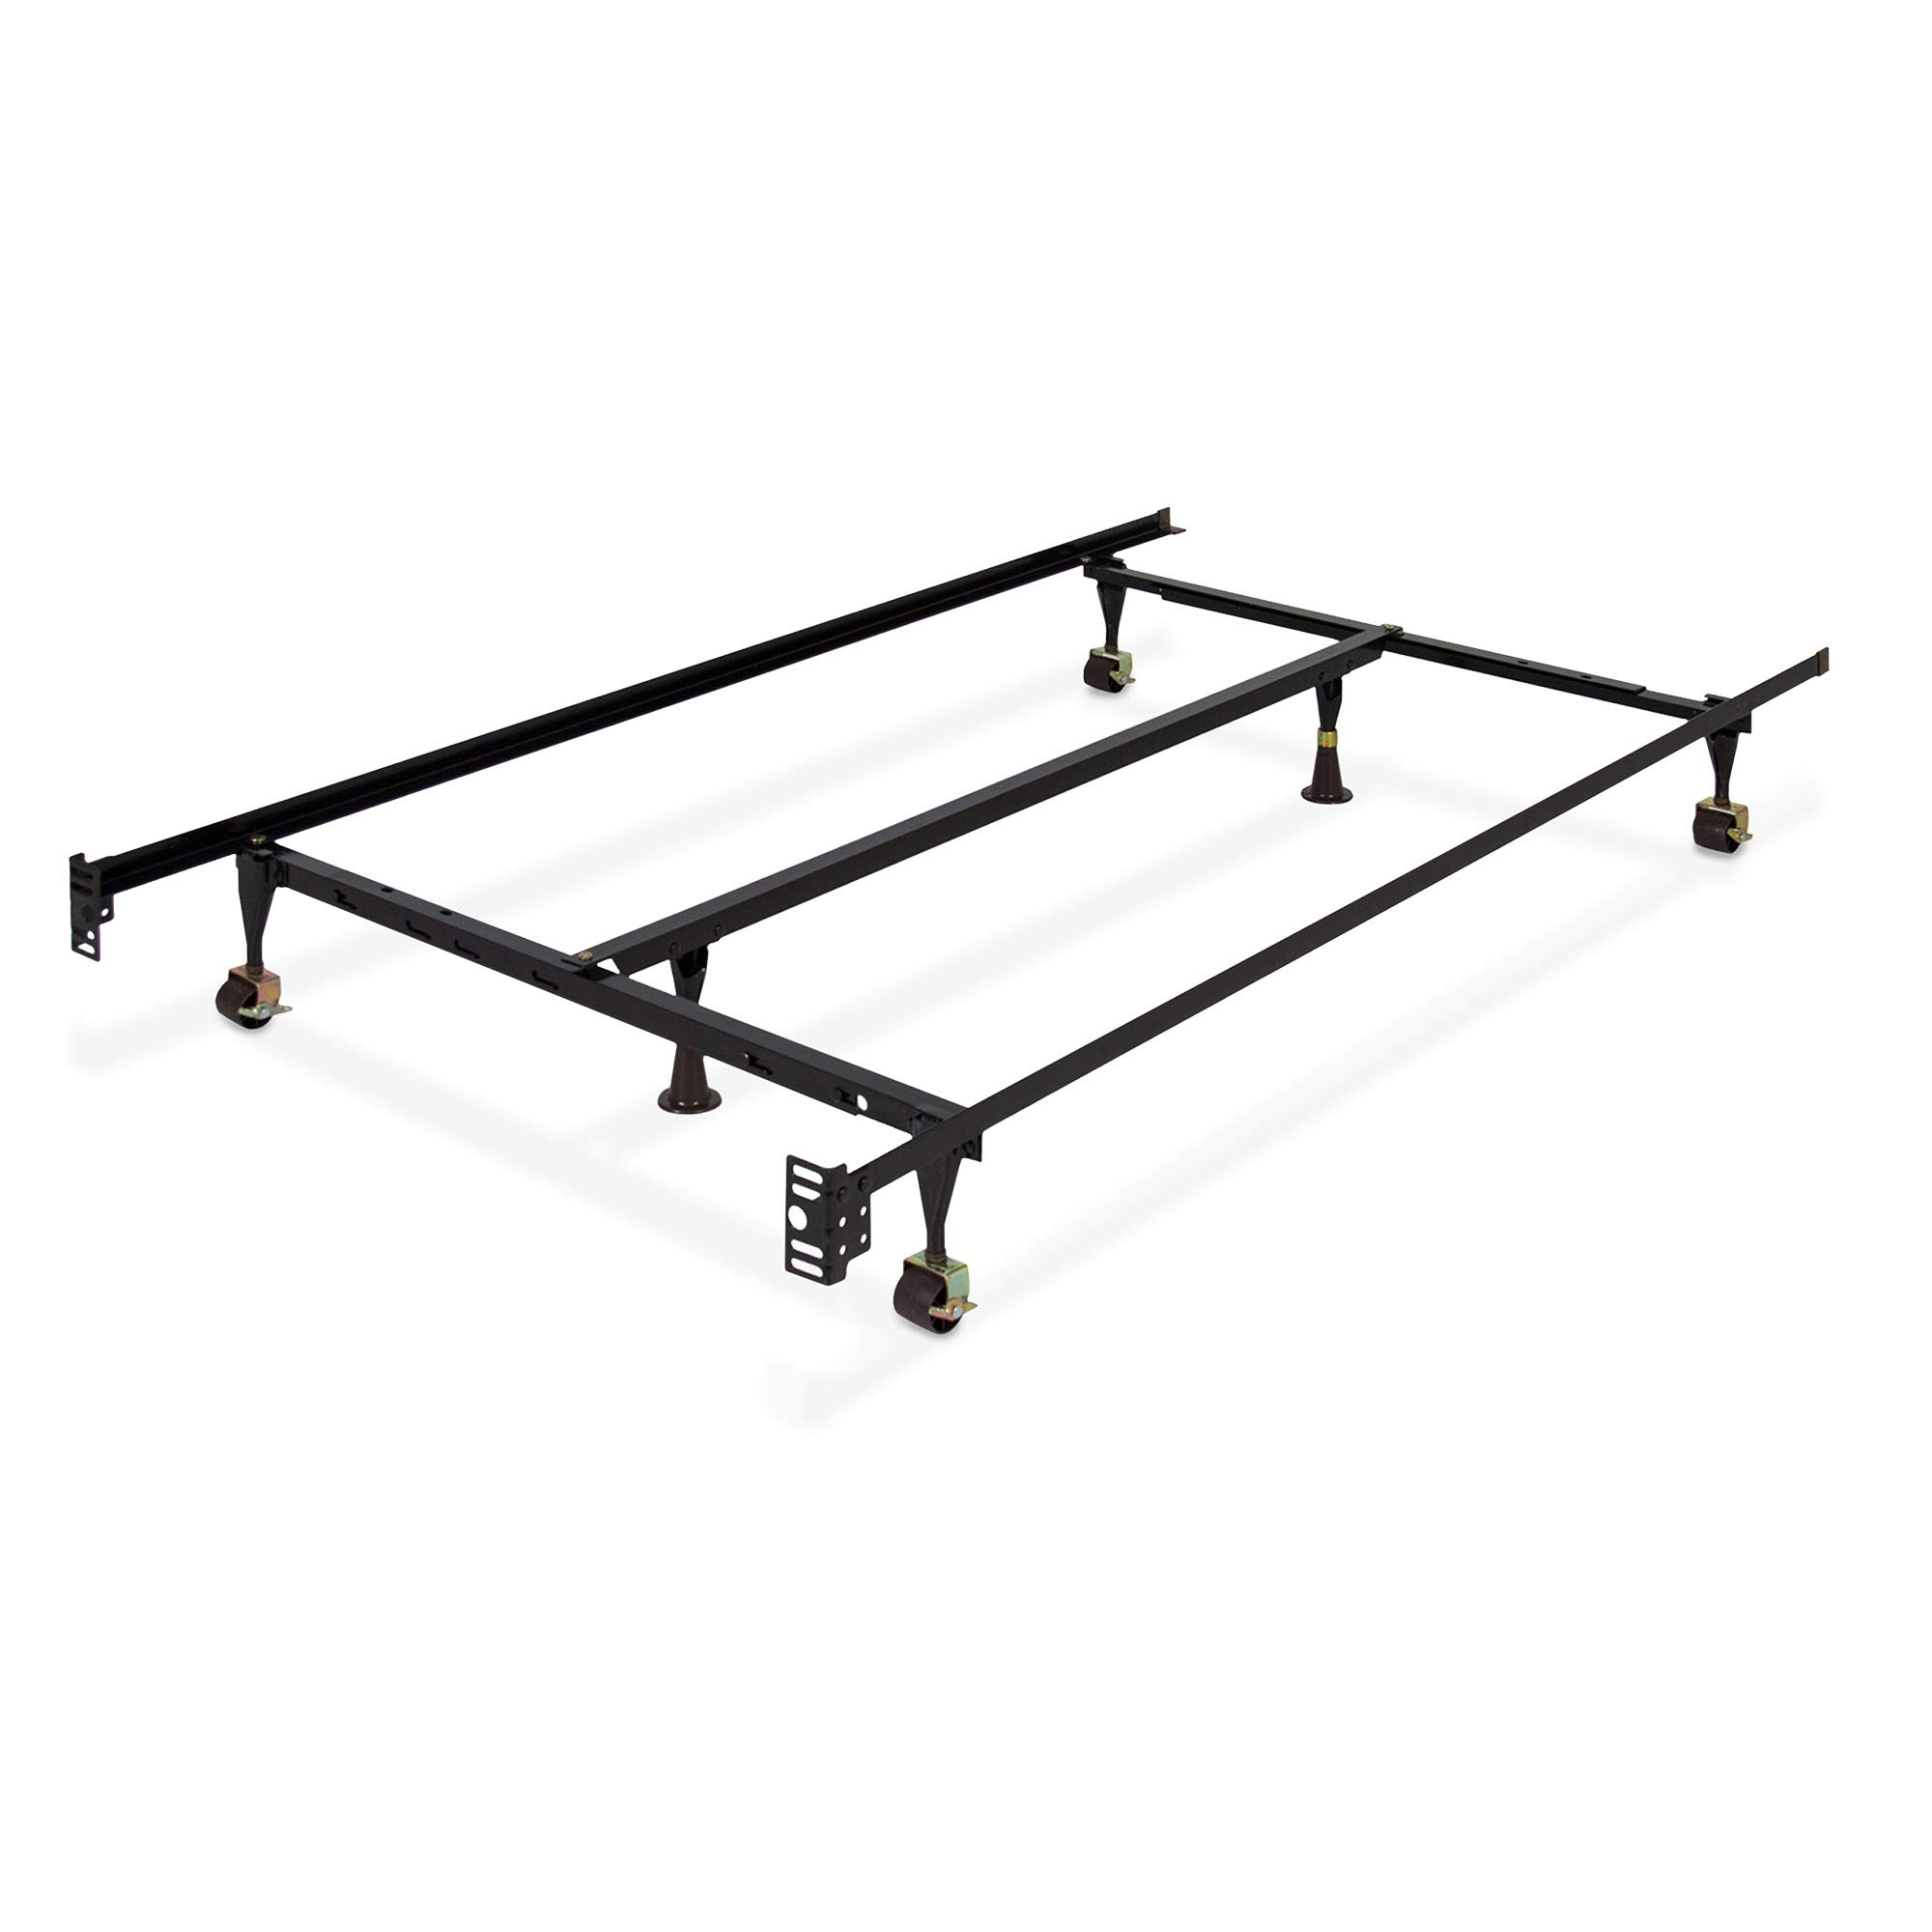 Best Choice Products Folding Adjustable Portable Metal Bed Frame for Twin, Full, Queen Sized Mattresses and Headboards with Center Support, Locking Wheel Rollers, Black by Best Choice Products